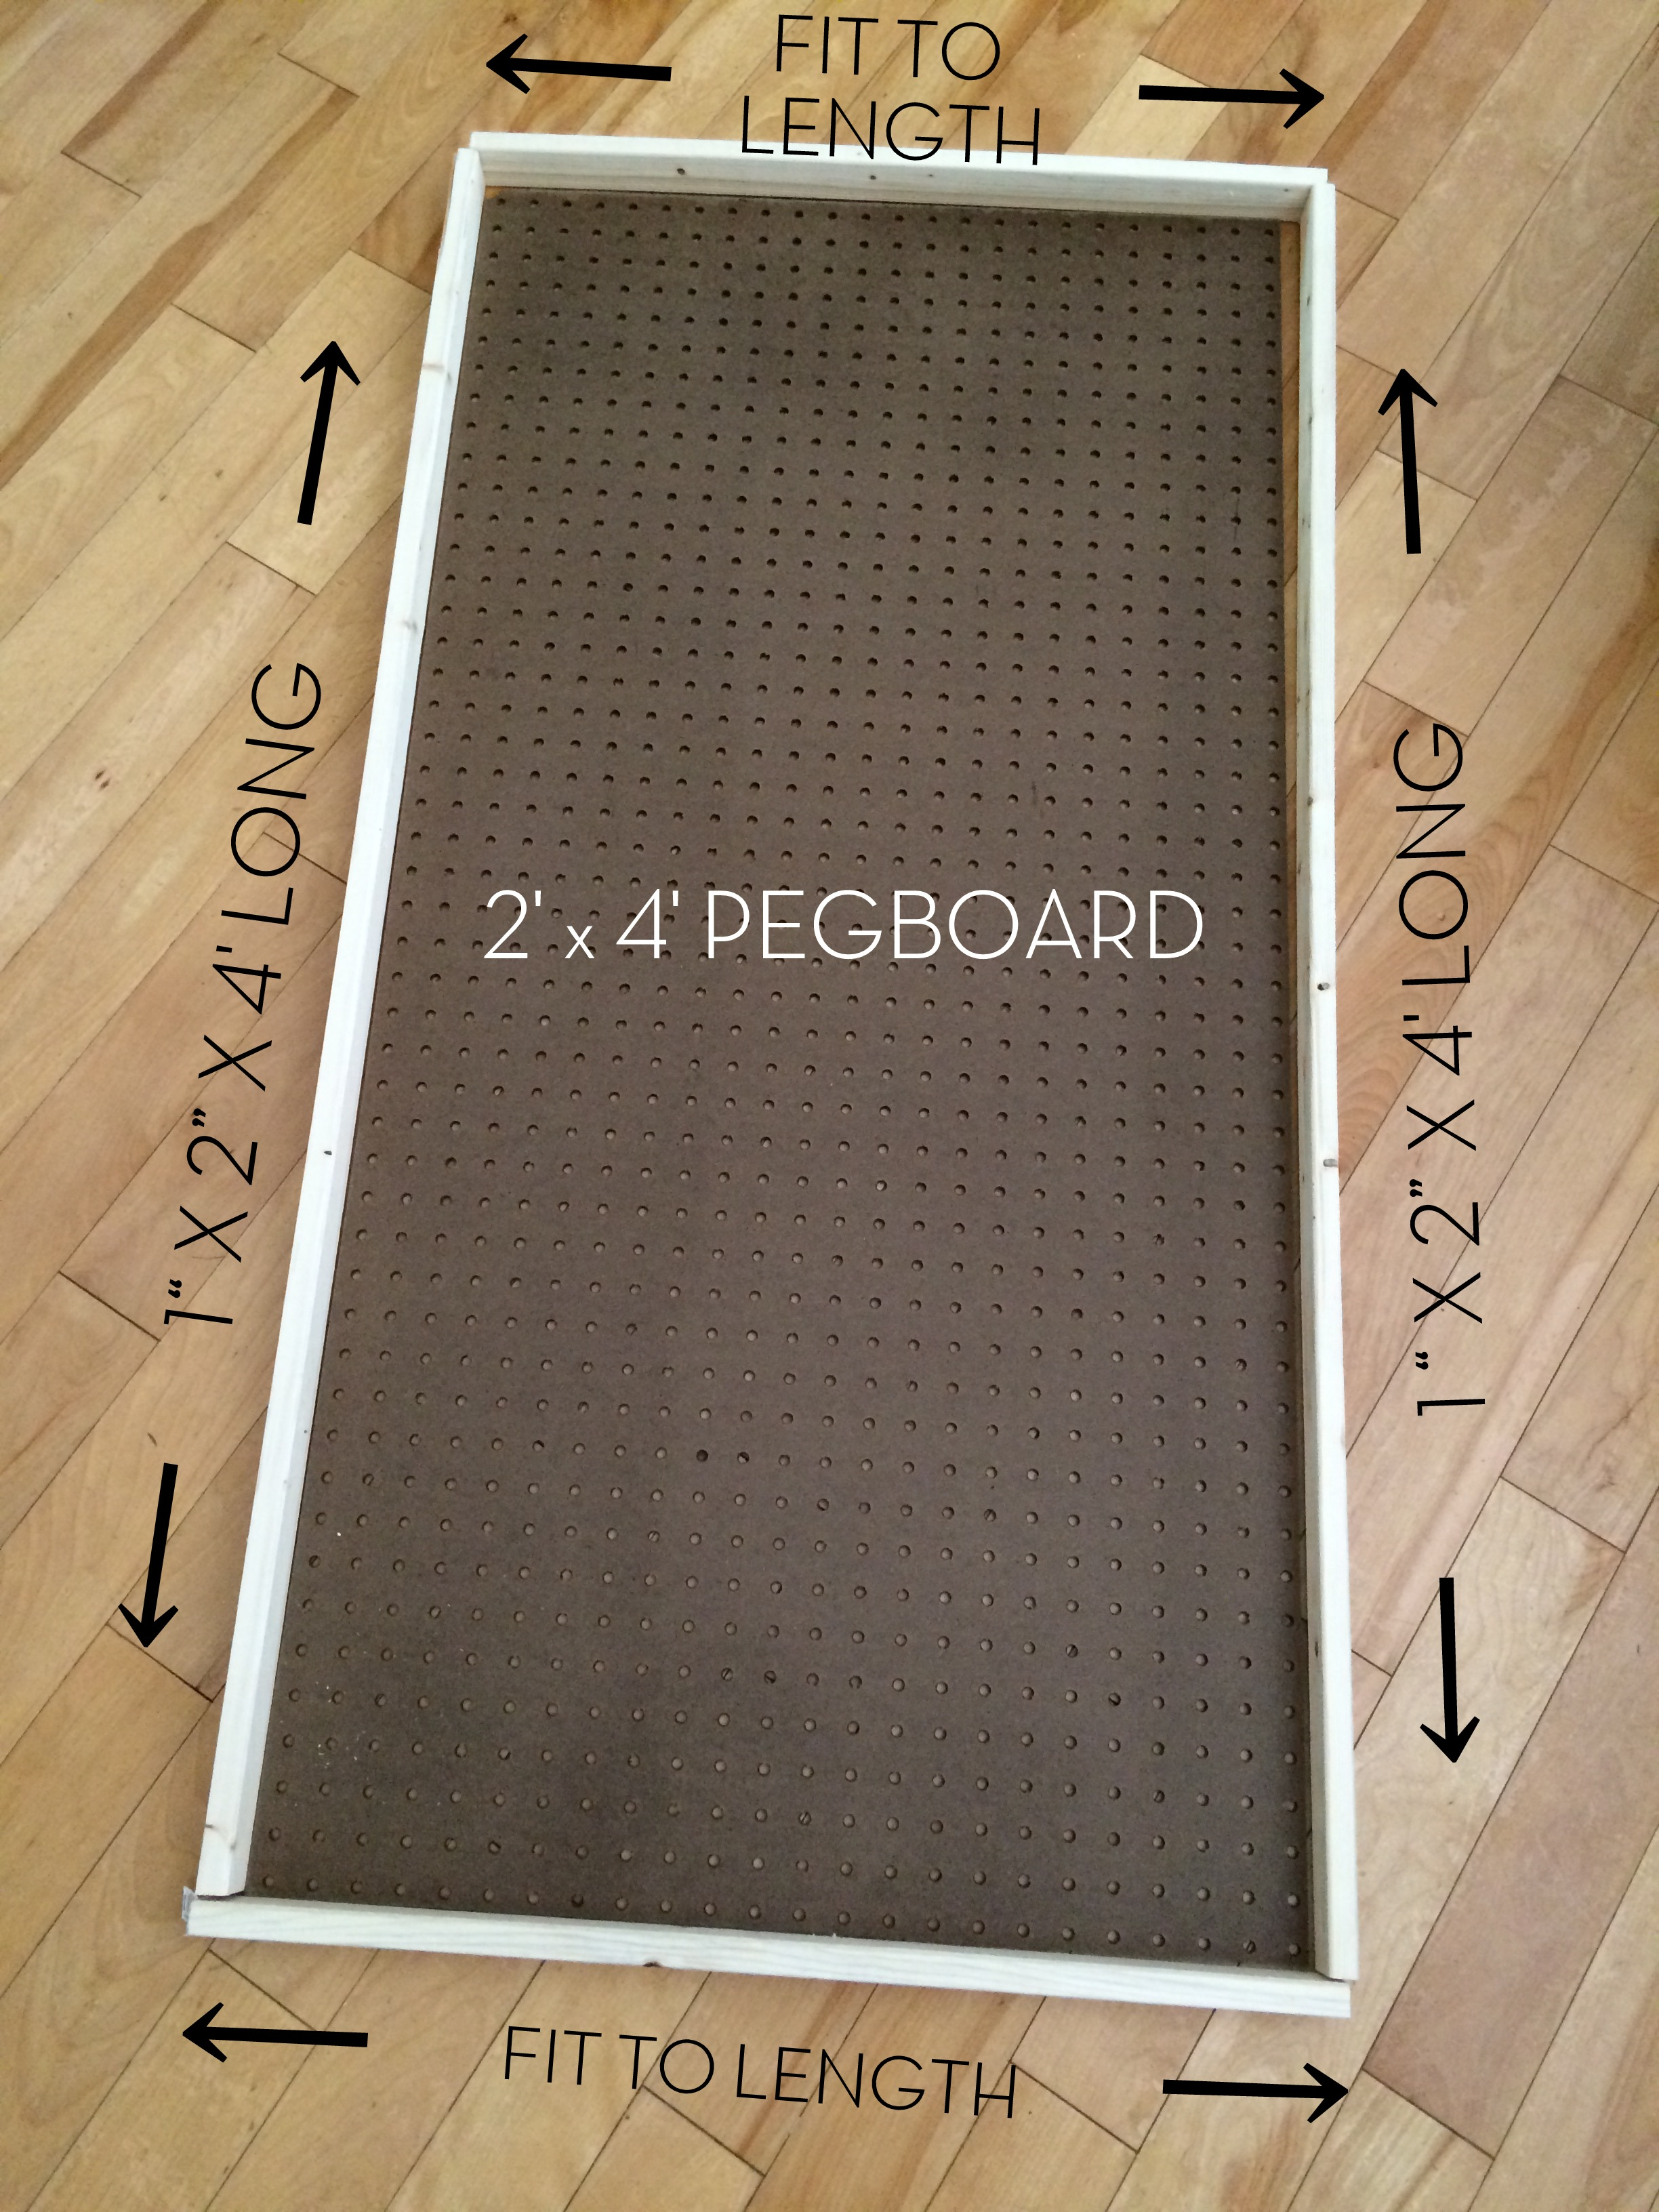 diy how to paint pegboard build and install a frame surround pegboard